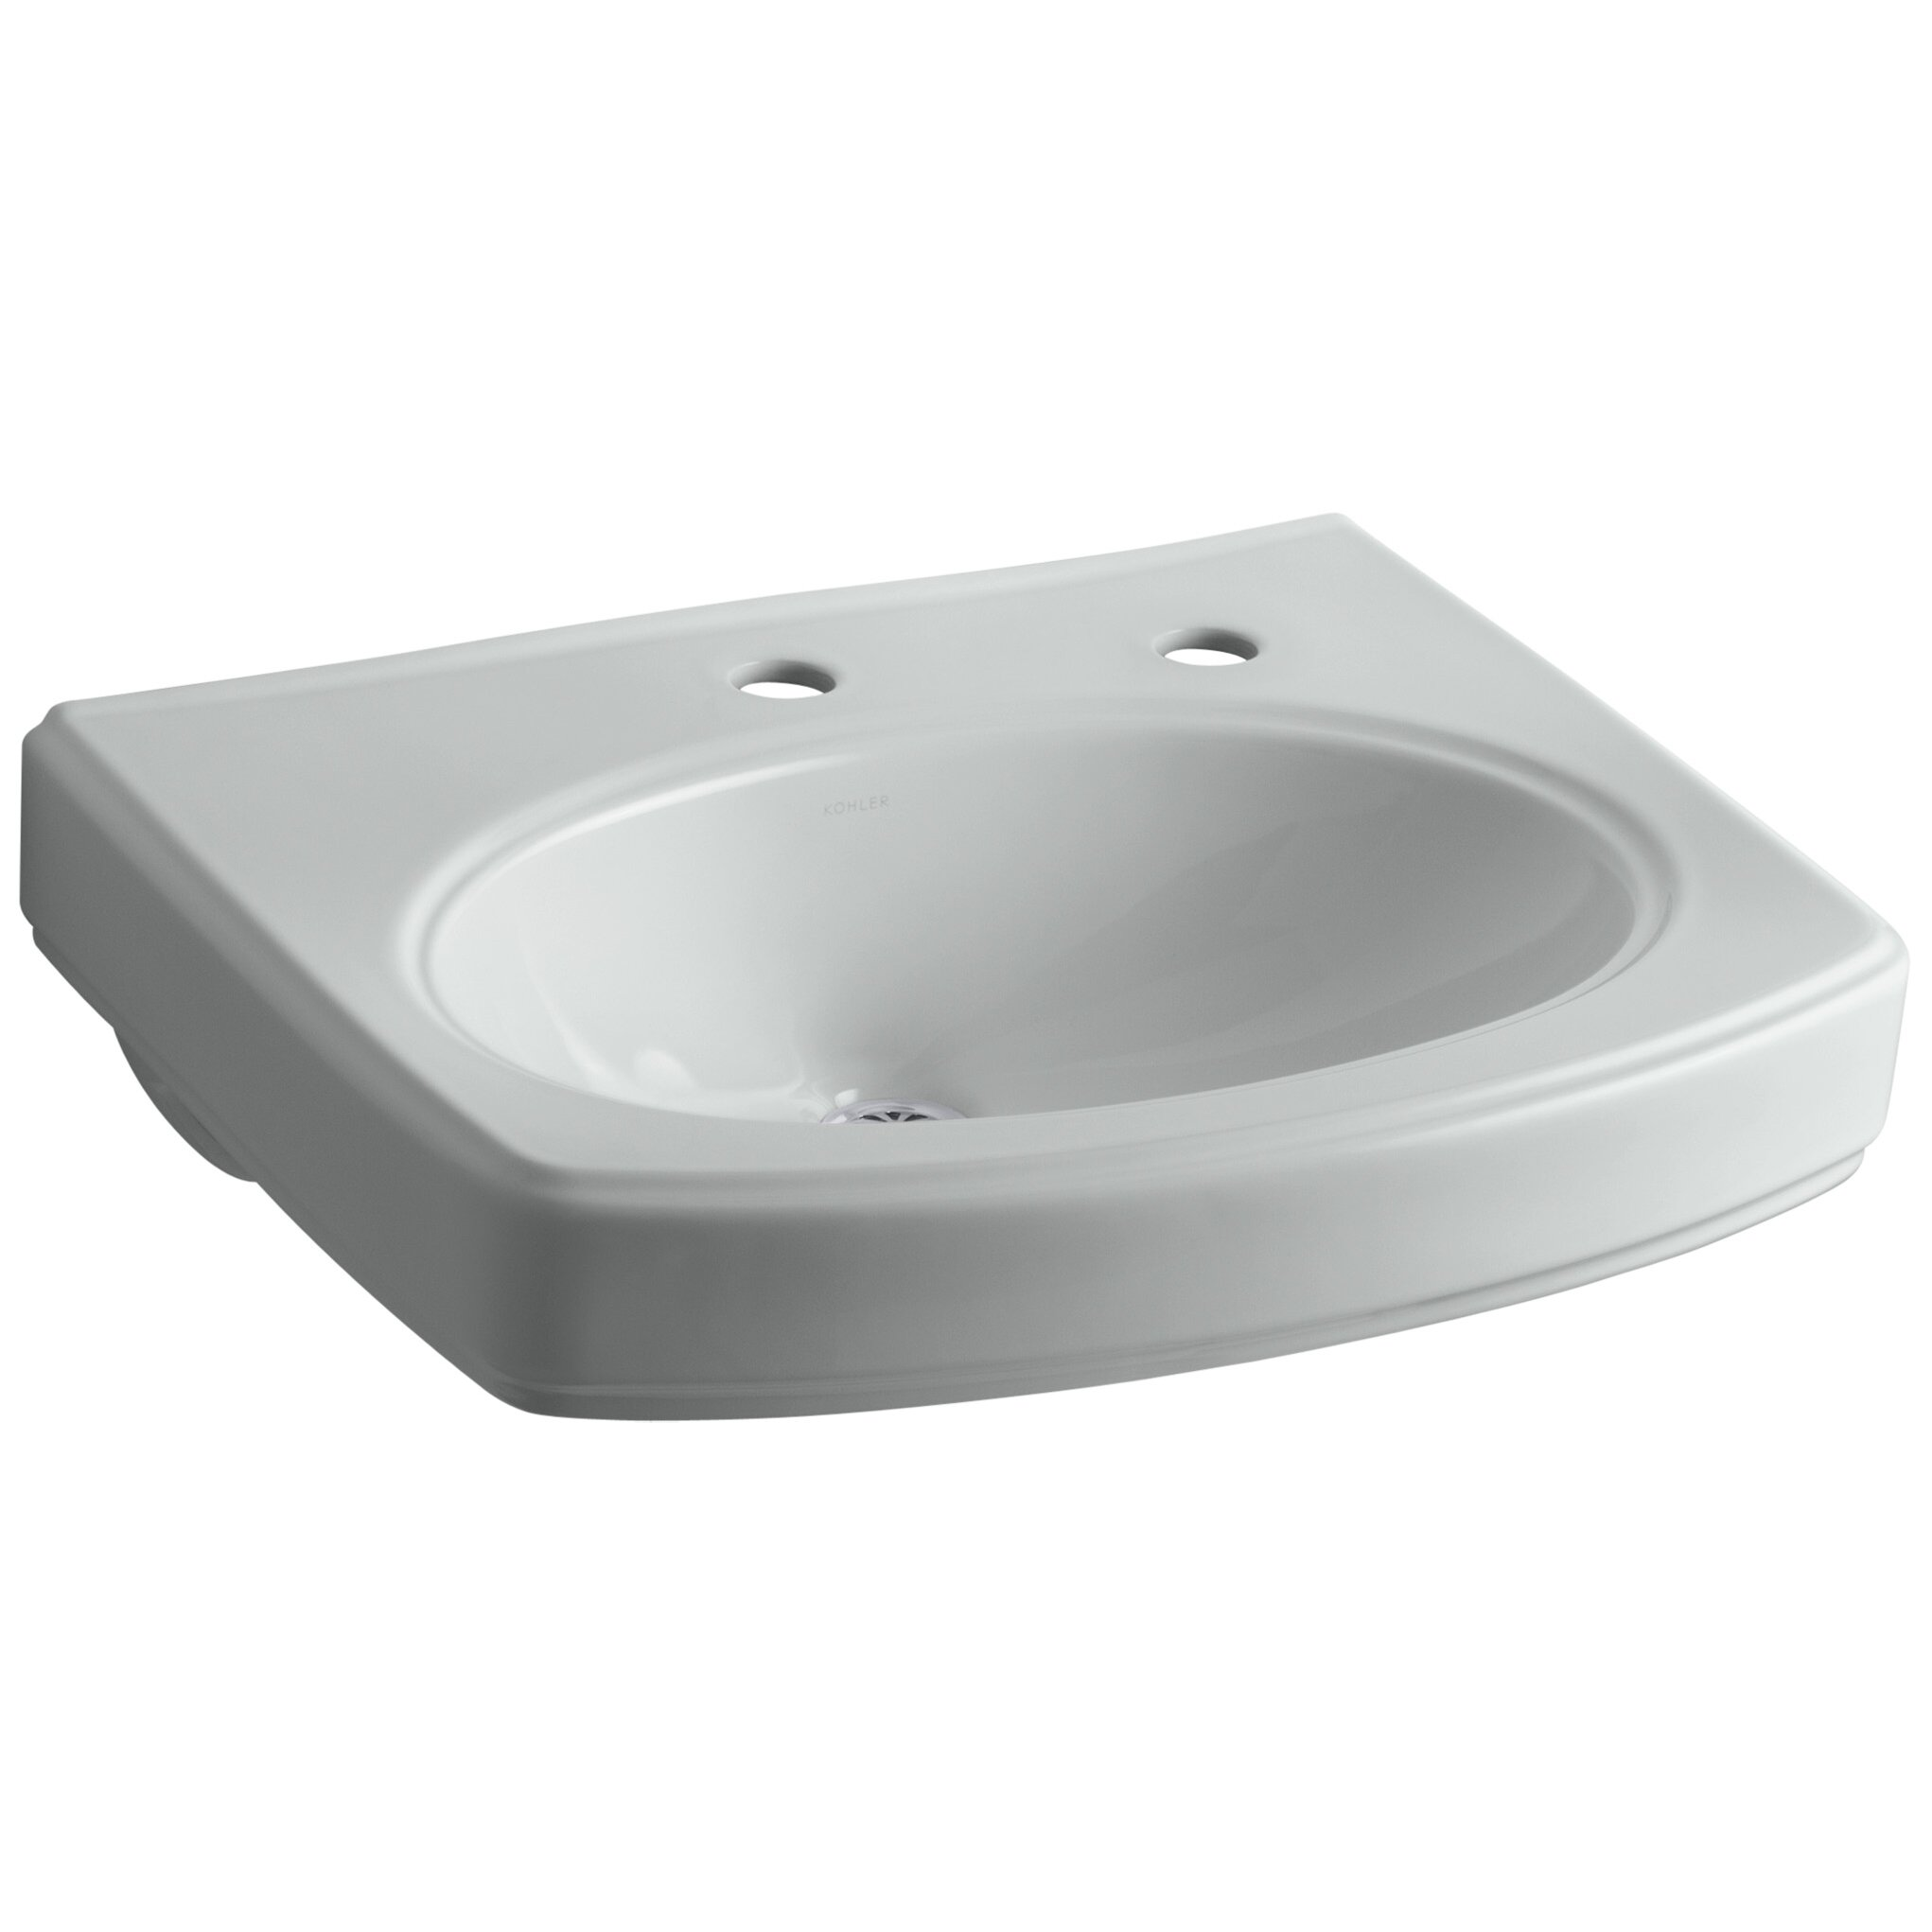 Pinoir Bathroom Sink Basin With Single Faucet Hole And Right Hand Soap Lotion Dispenser Wayfair